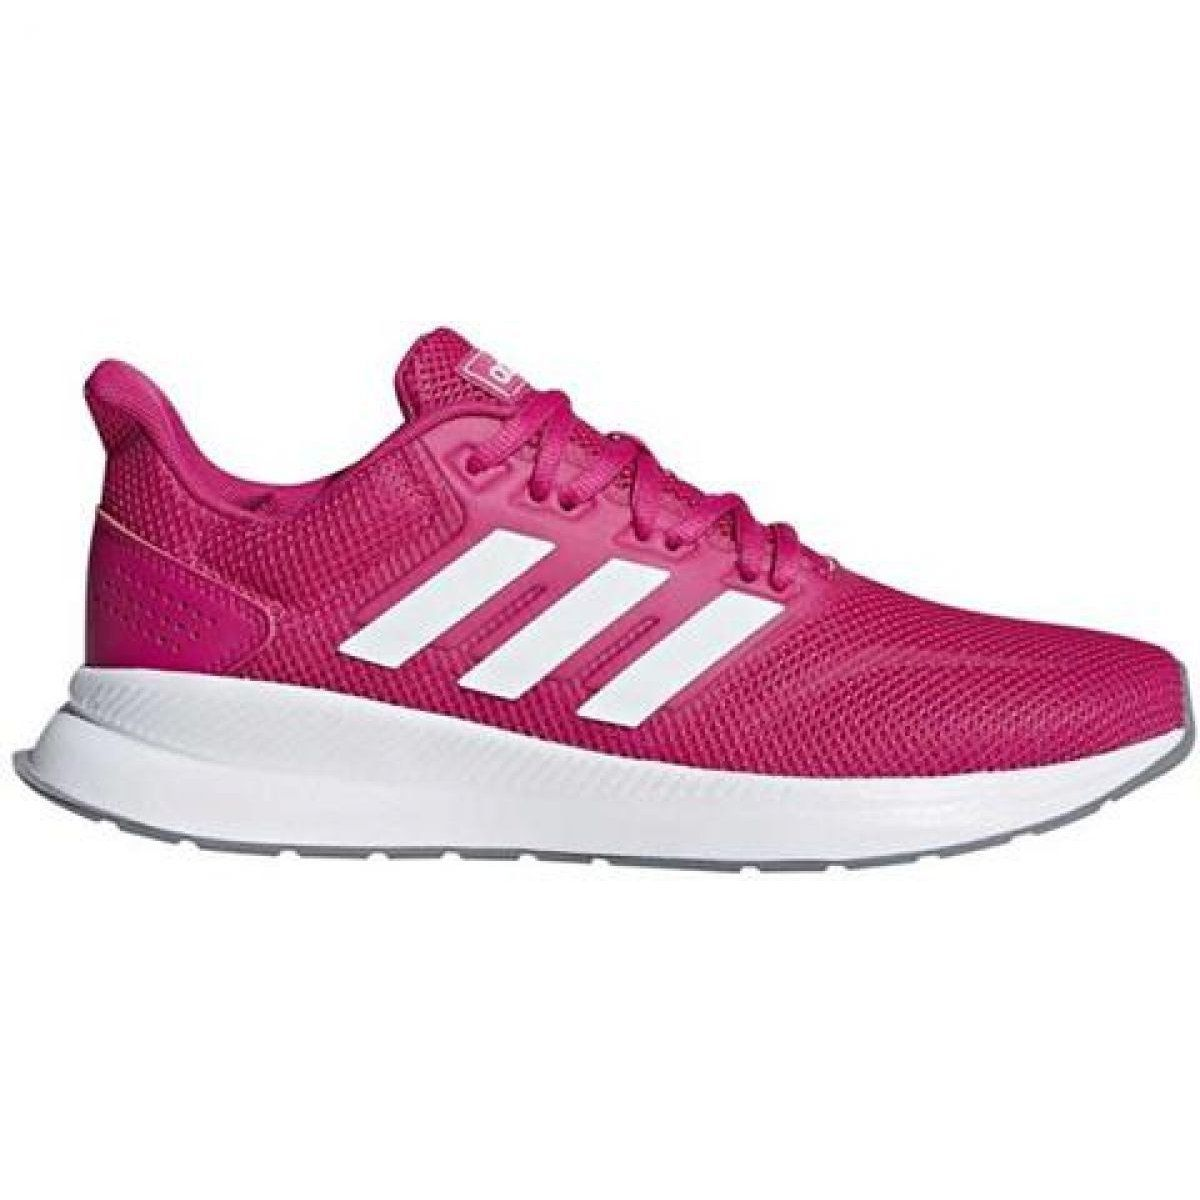 Buty Biegowe Adidas Runfalcon W F36219 Rozowe Pink Running Shoes Pink Adidas Pink Sneakers